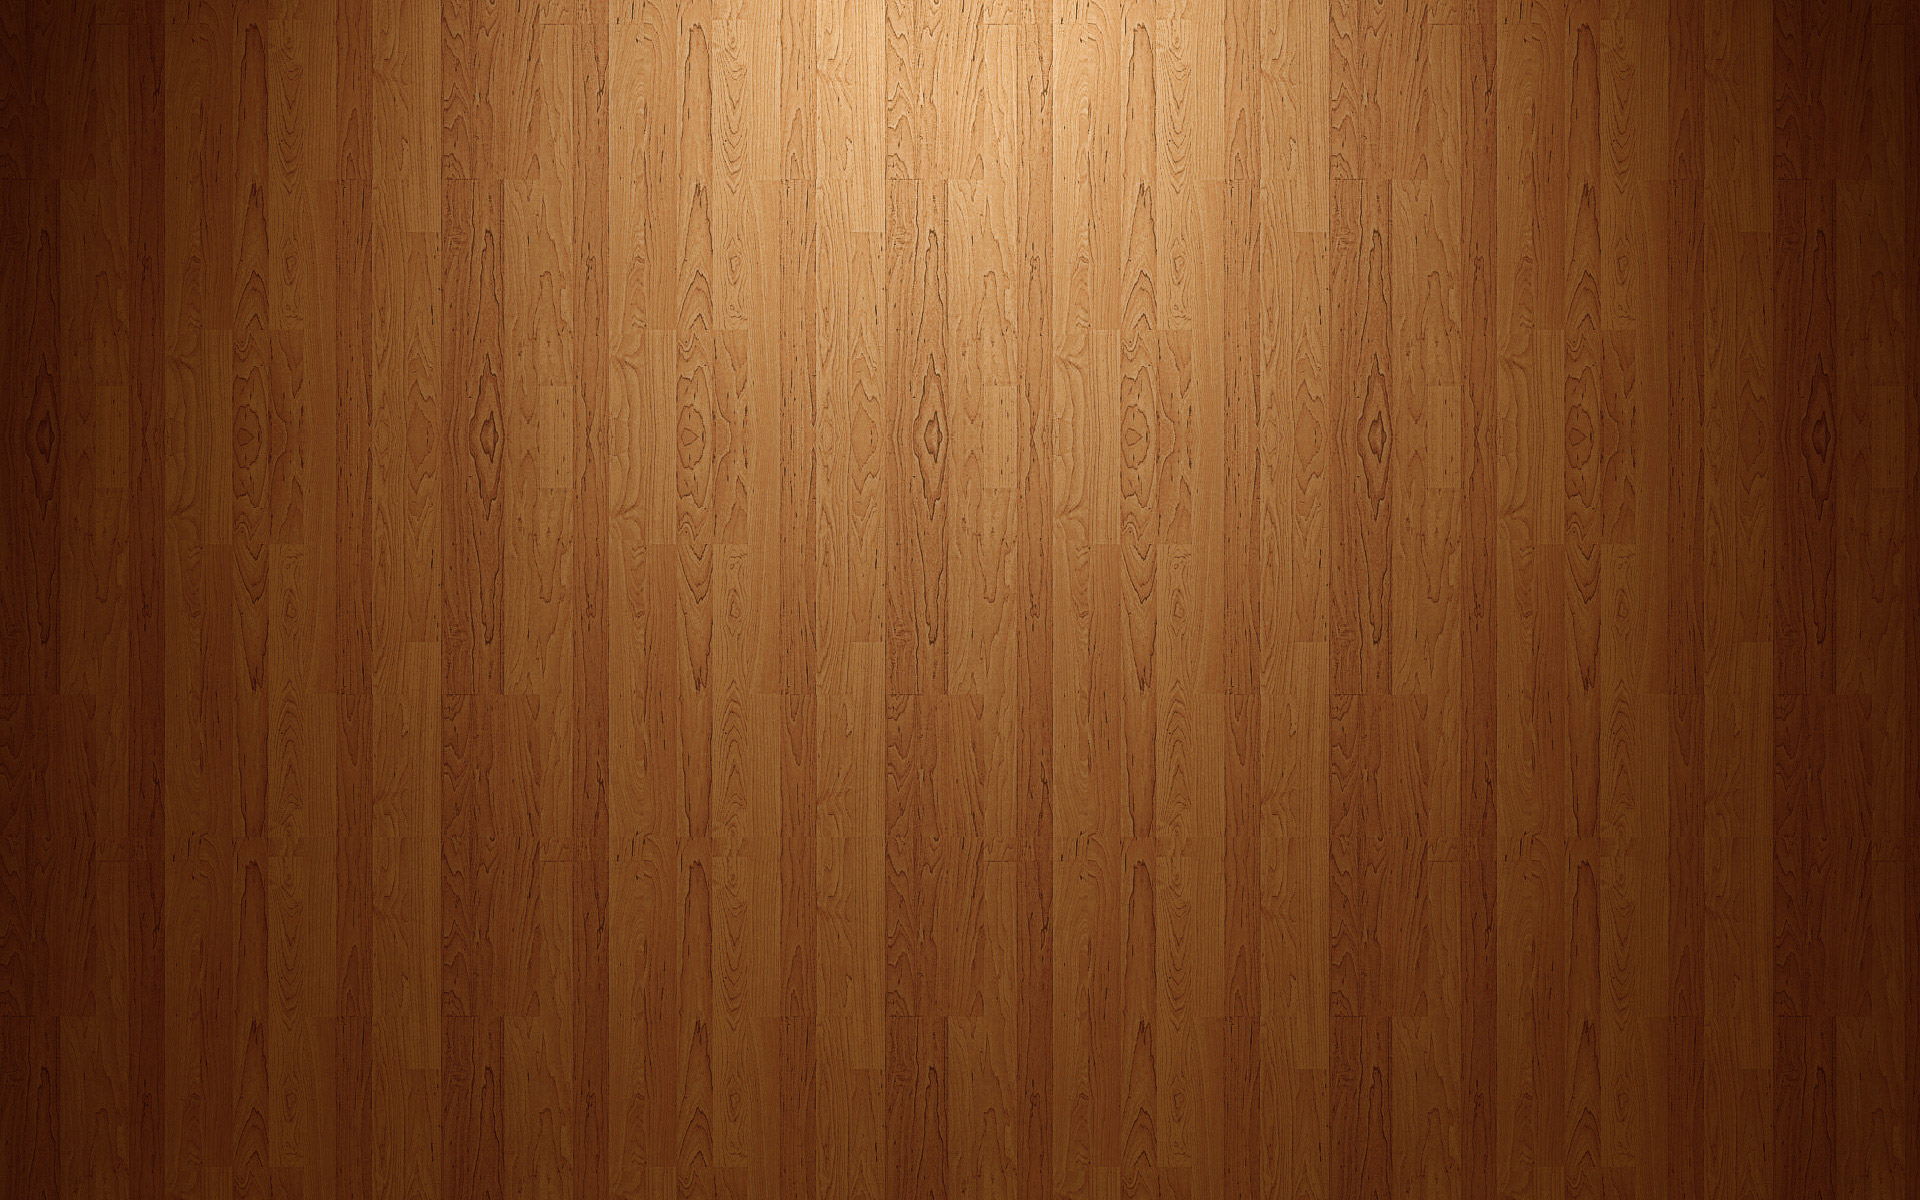 Light Hardwood Floor Texture: - CO.ME.P Infissi ACCIAIO, INOX